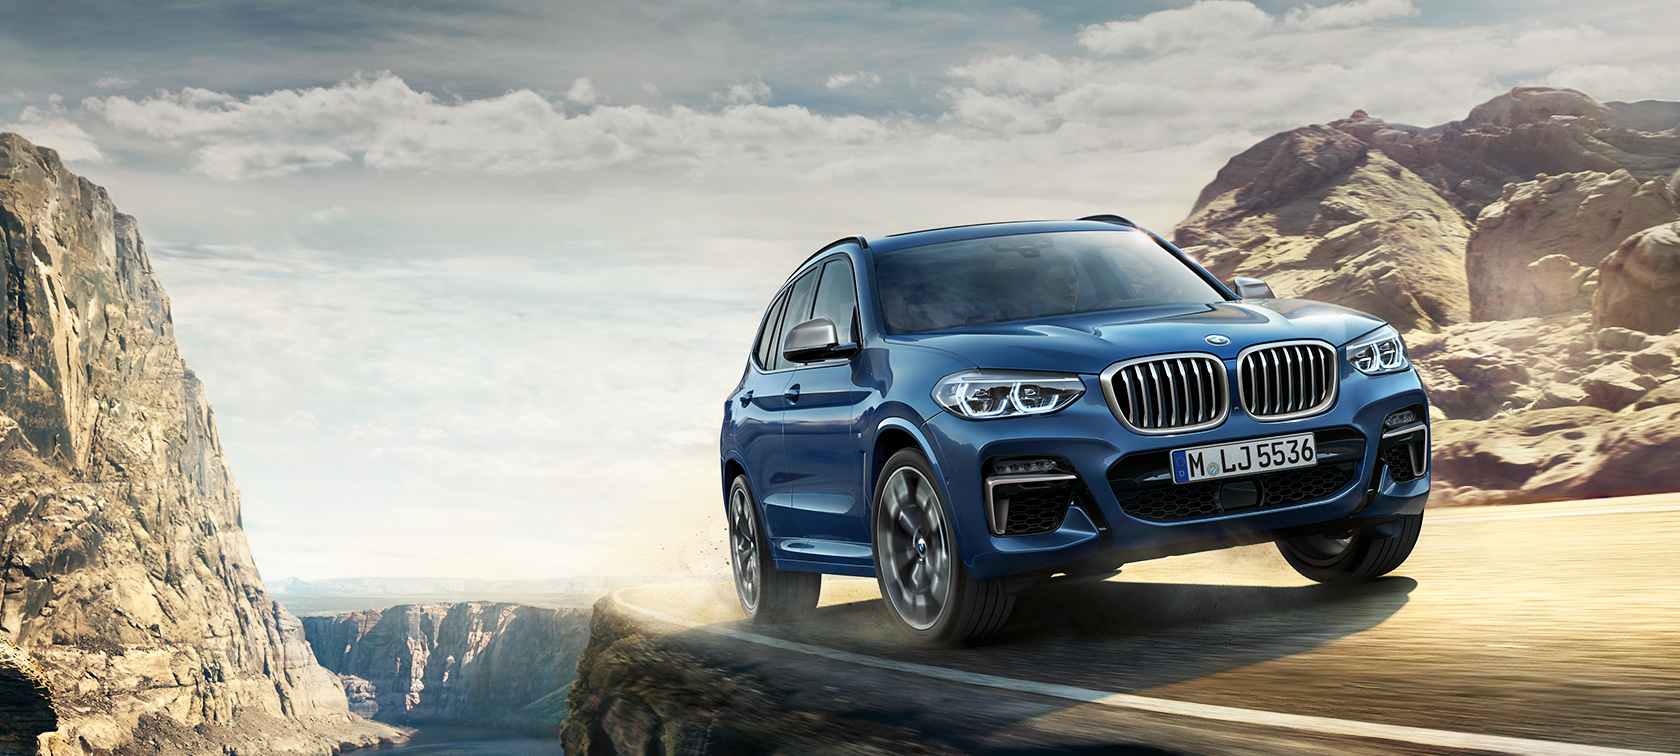 BMW X3 M40i in collina, ripresa in movimento